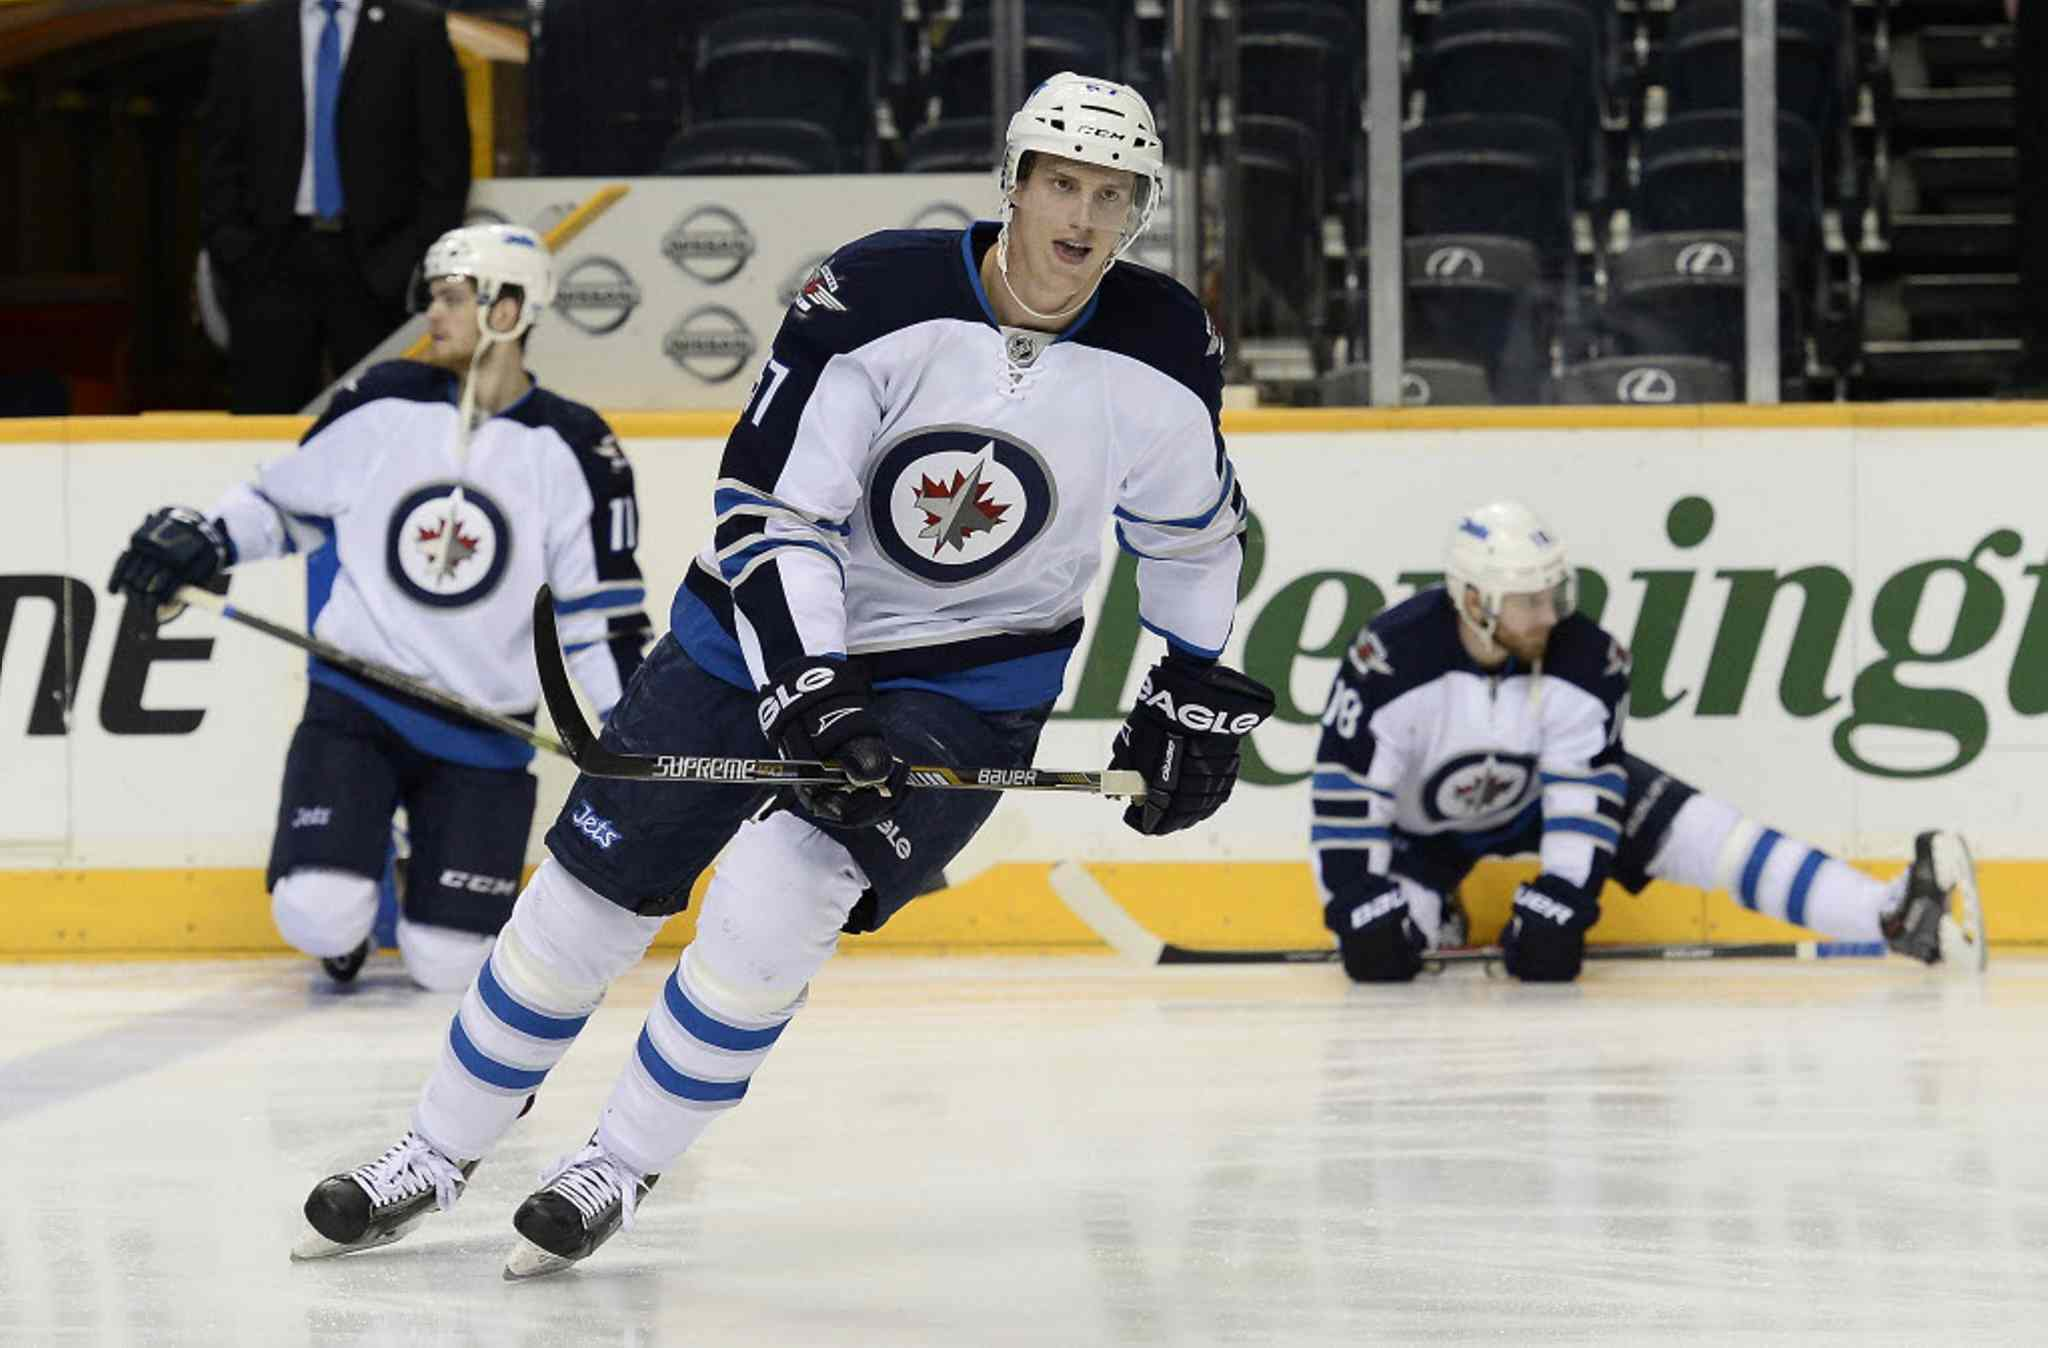 Winnipeg Jets defenceman Tyler Myers blocked a hard shot late in the game in Nashville and skipped Friday's workout in Detroit. He will be available for tonight's game.